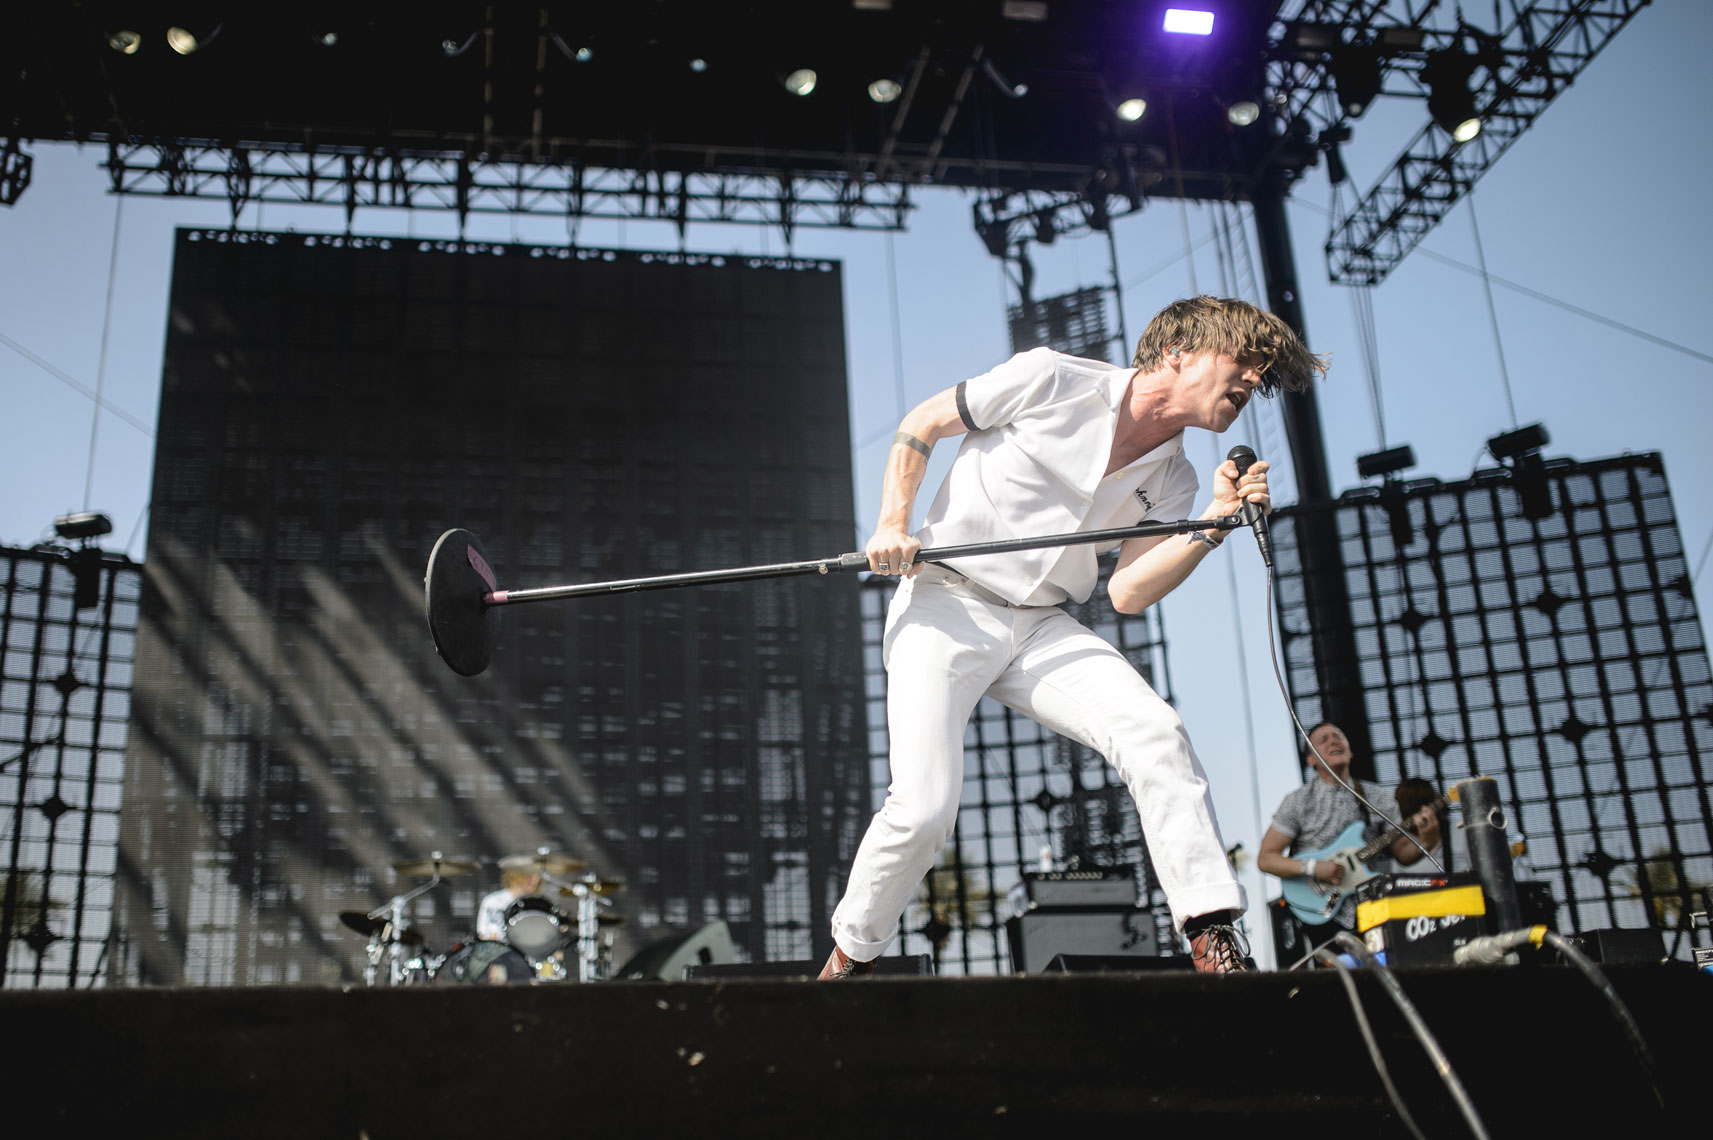 Cage the Elephant at Coachella 2014